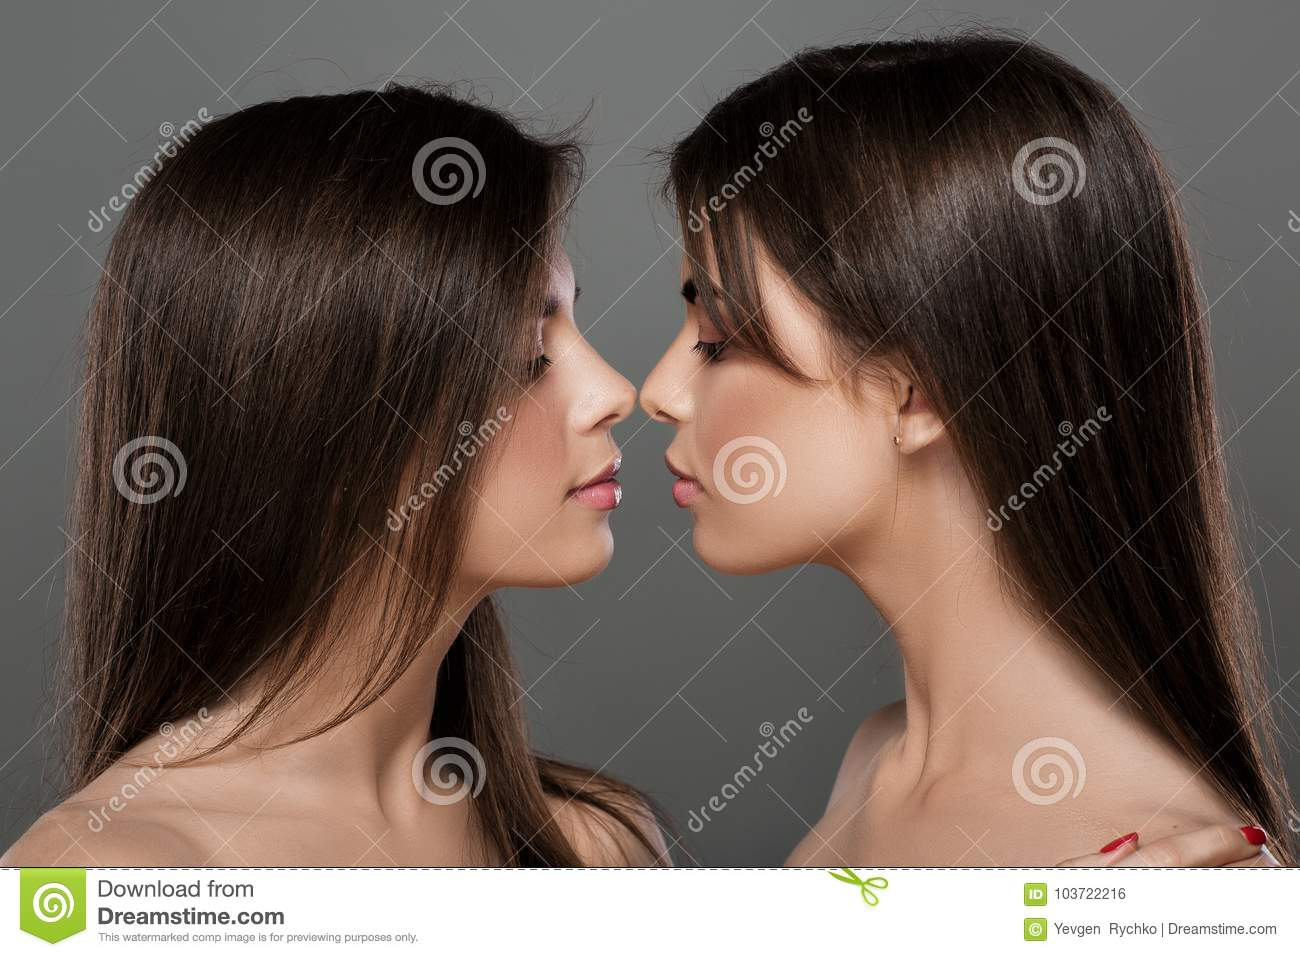 Congratulate, twins lesbians kissing opinion